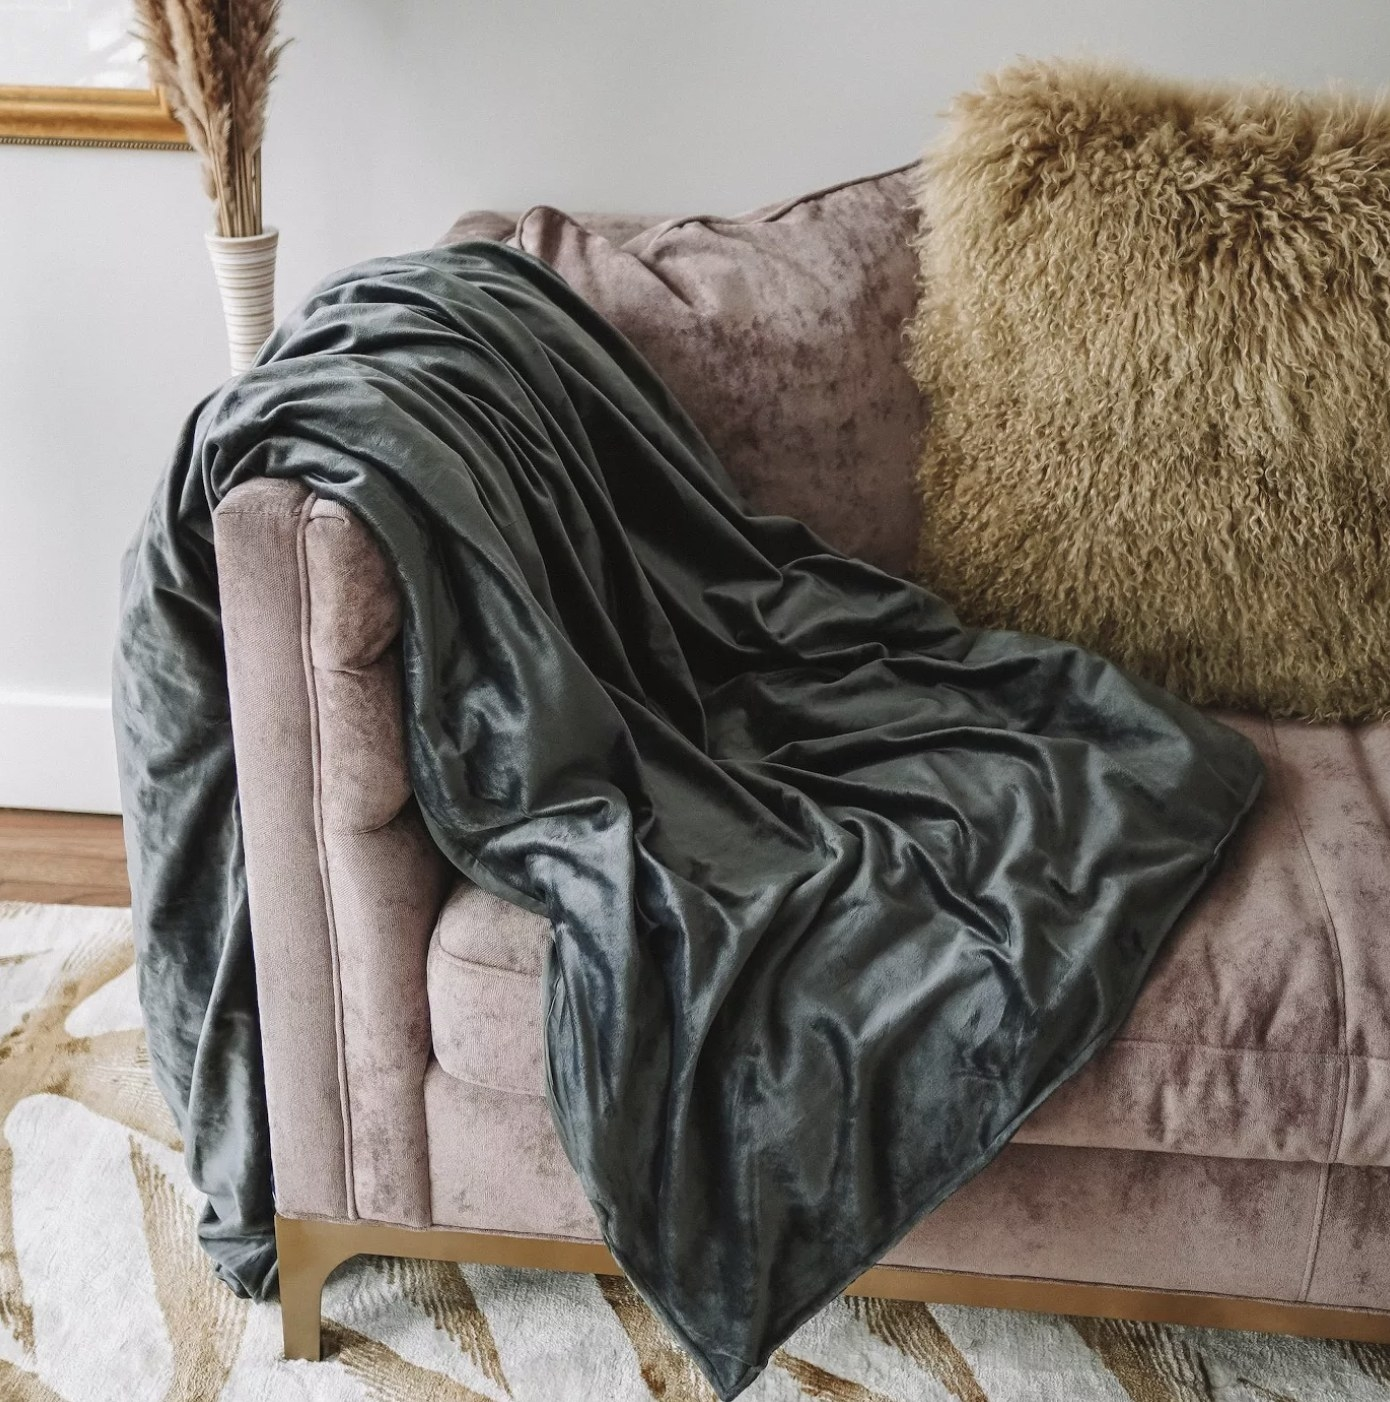 The dark grey blanket draped on a couch